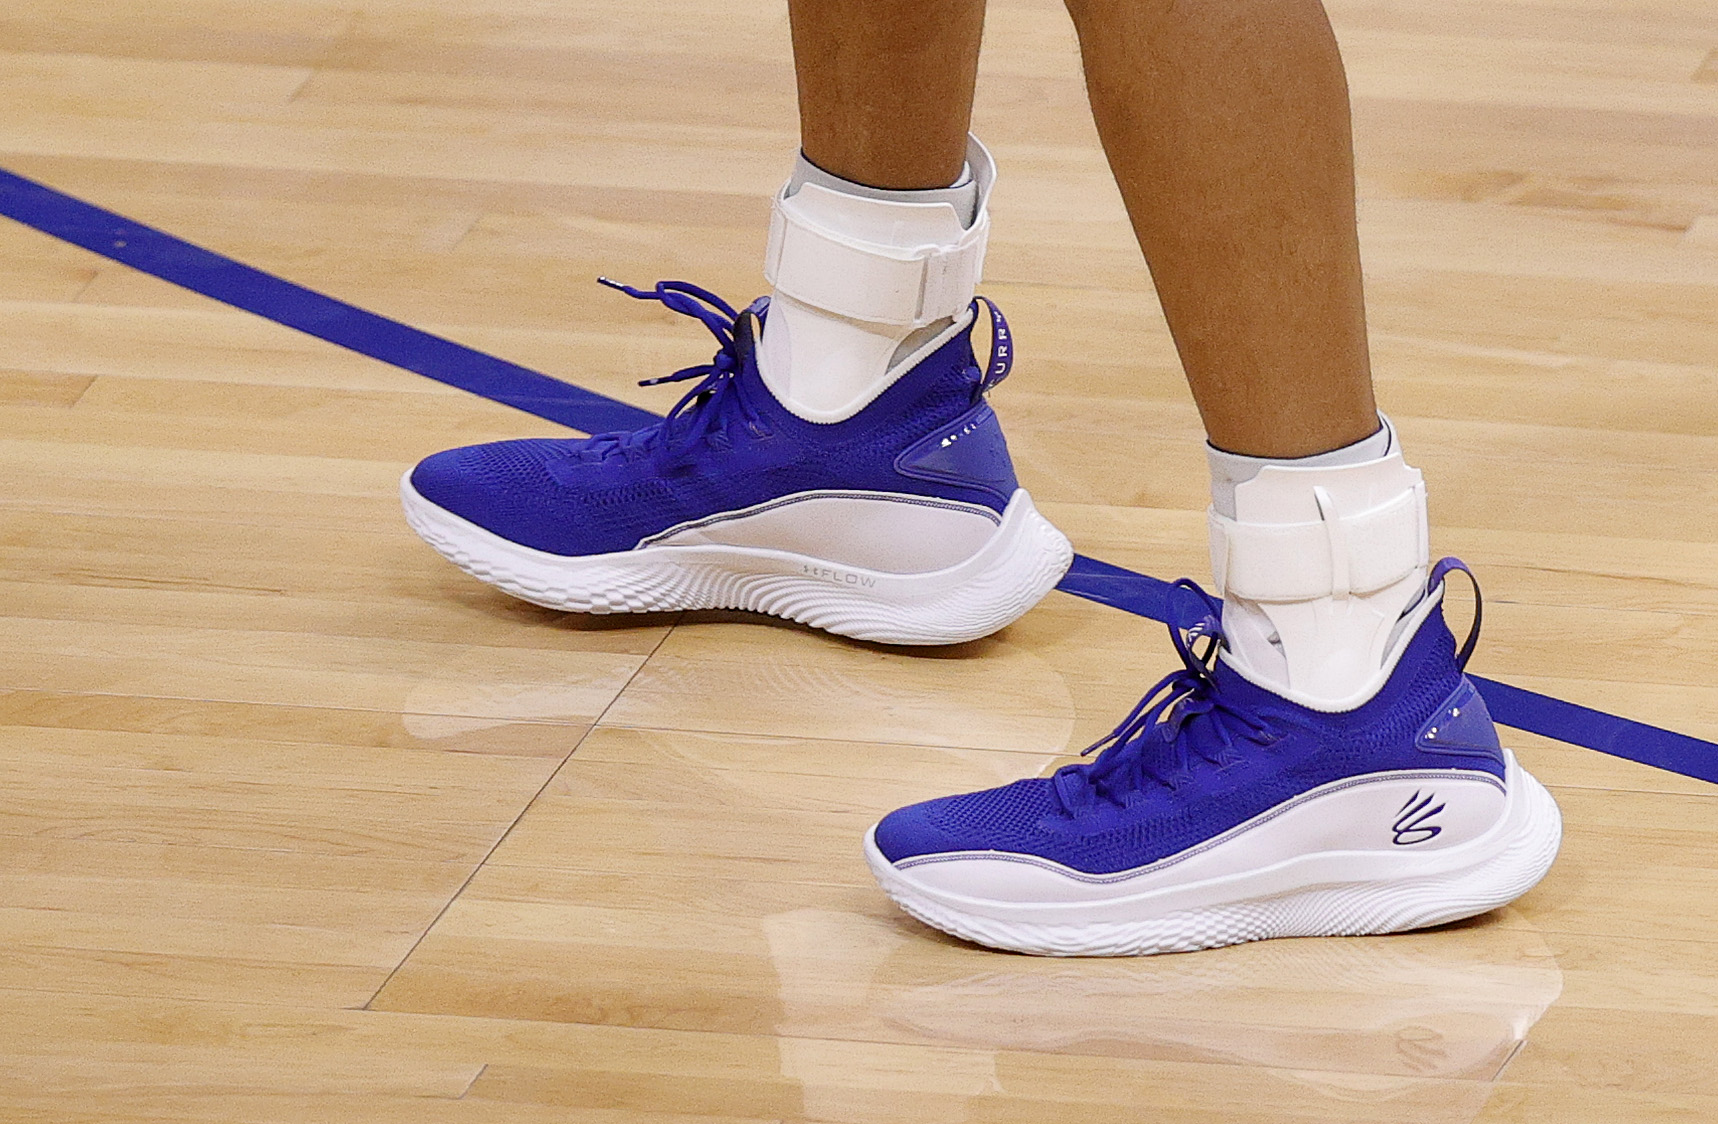 Steph Curry Gives Away 62 Pairs of Curry 8 Sneakers Student Athletes